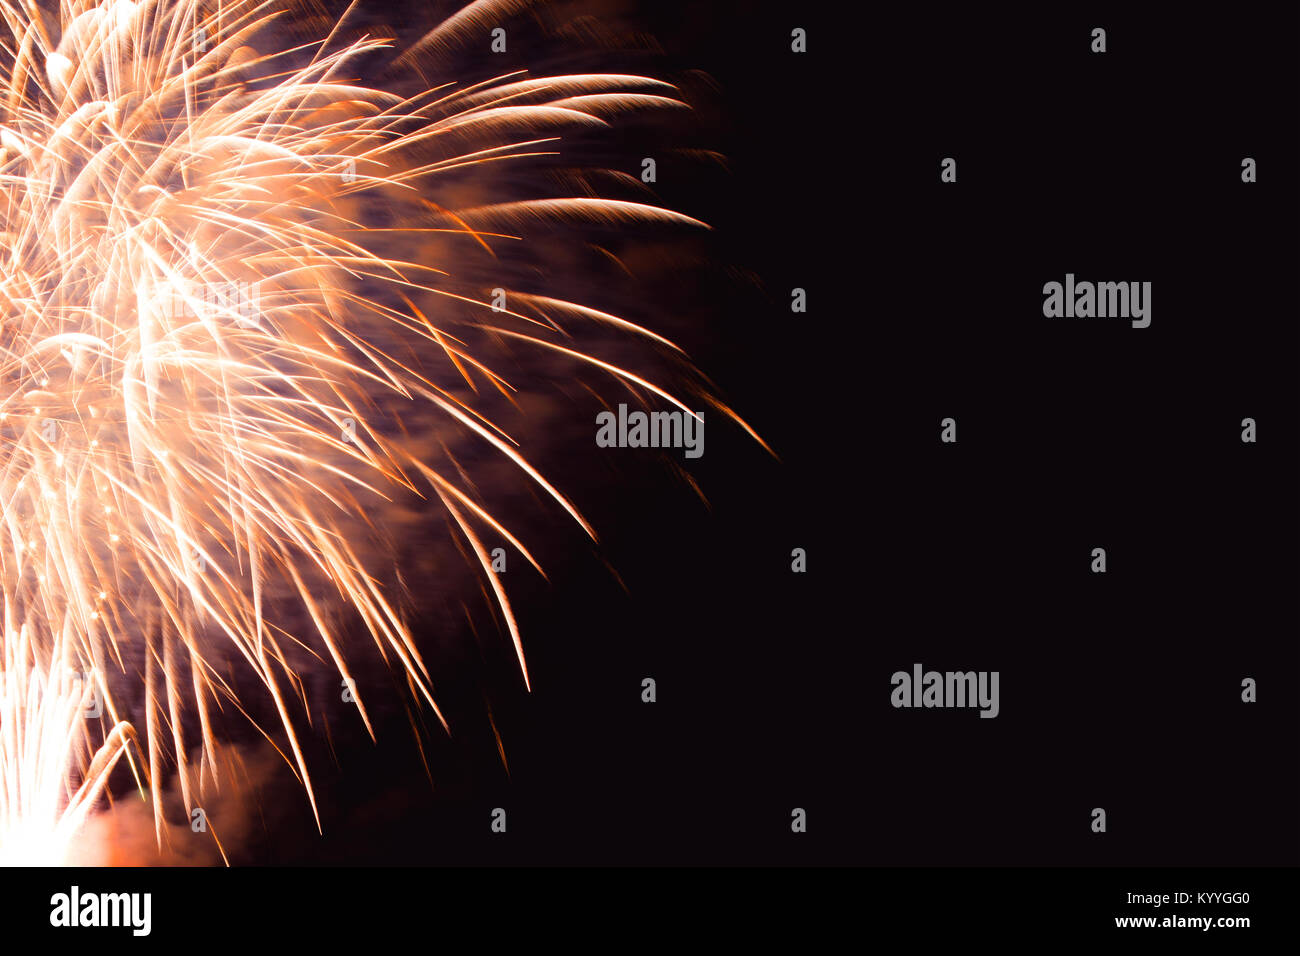 Rainbow Fireworks Celebration Colorful Abstract Image With: Gold Firework Black Background Stock Photos & Gold